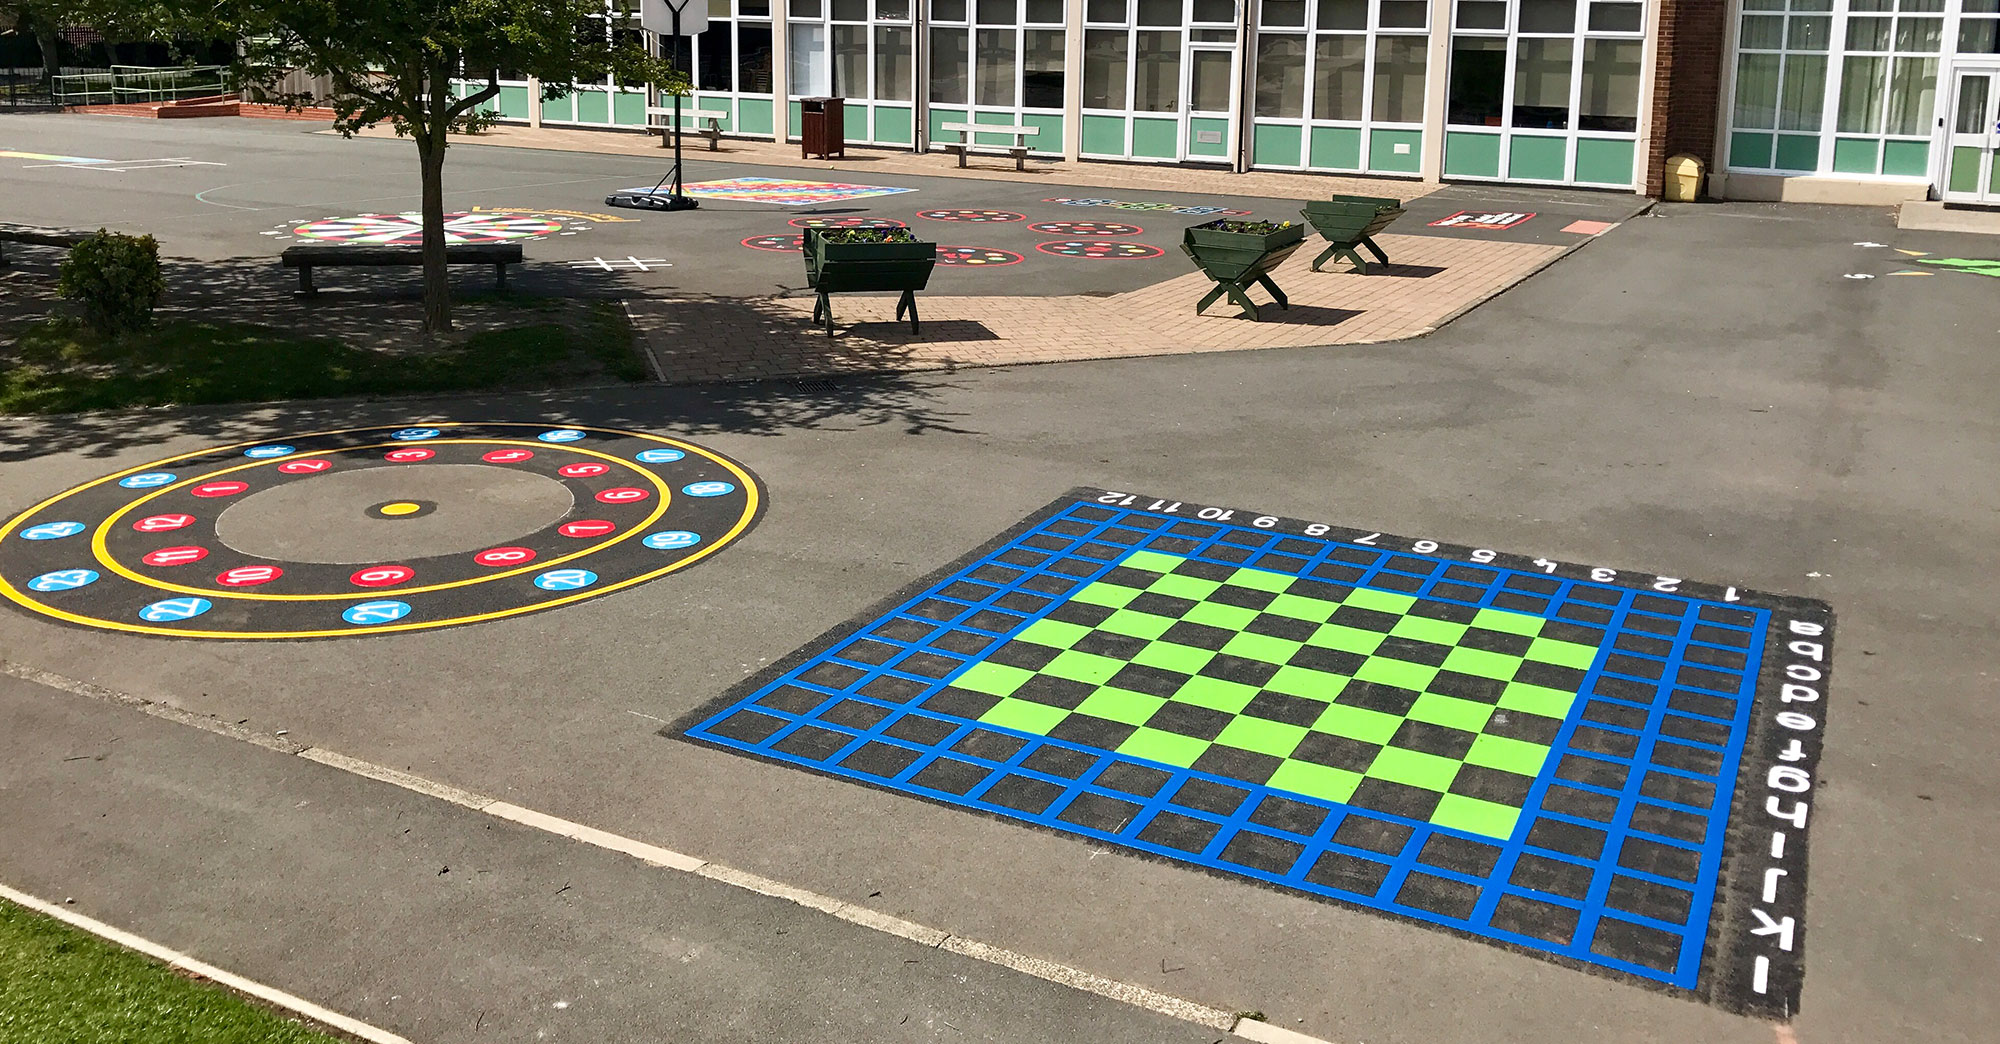 jw-peters-school-play-areas